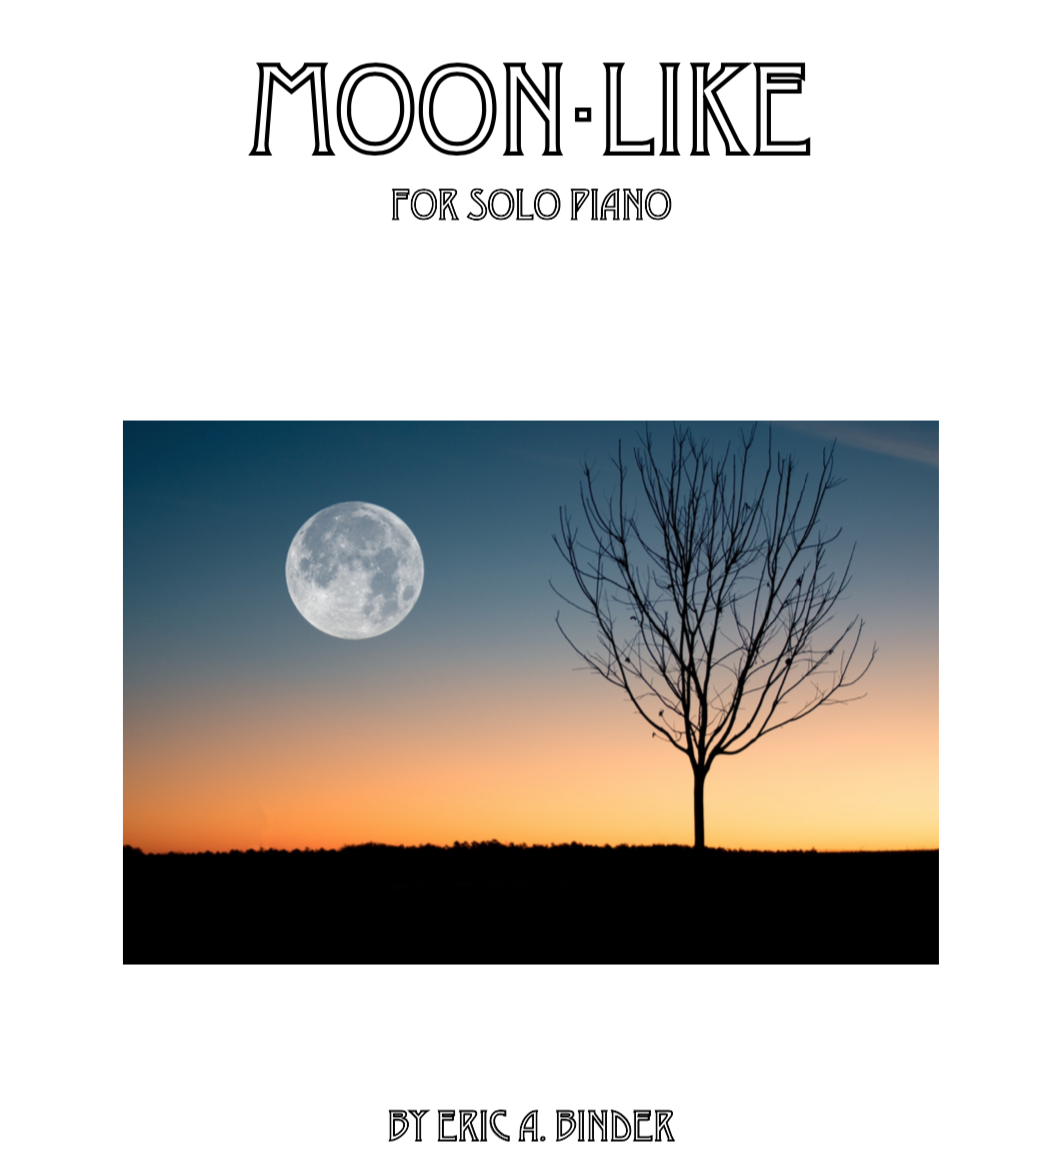 Image of Moon-Like for Solo Piano